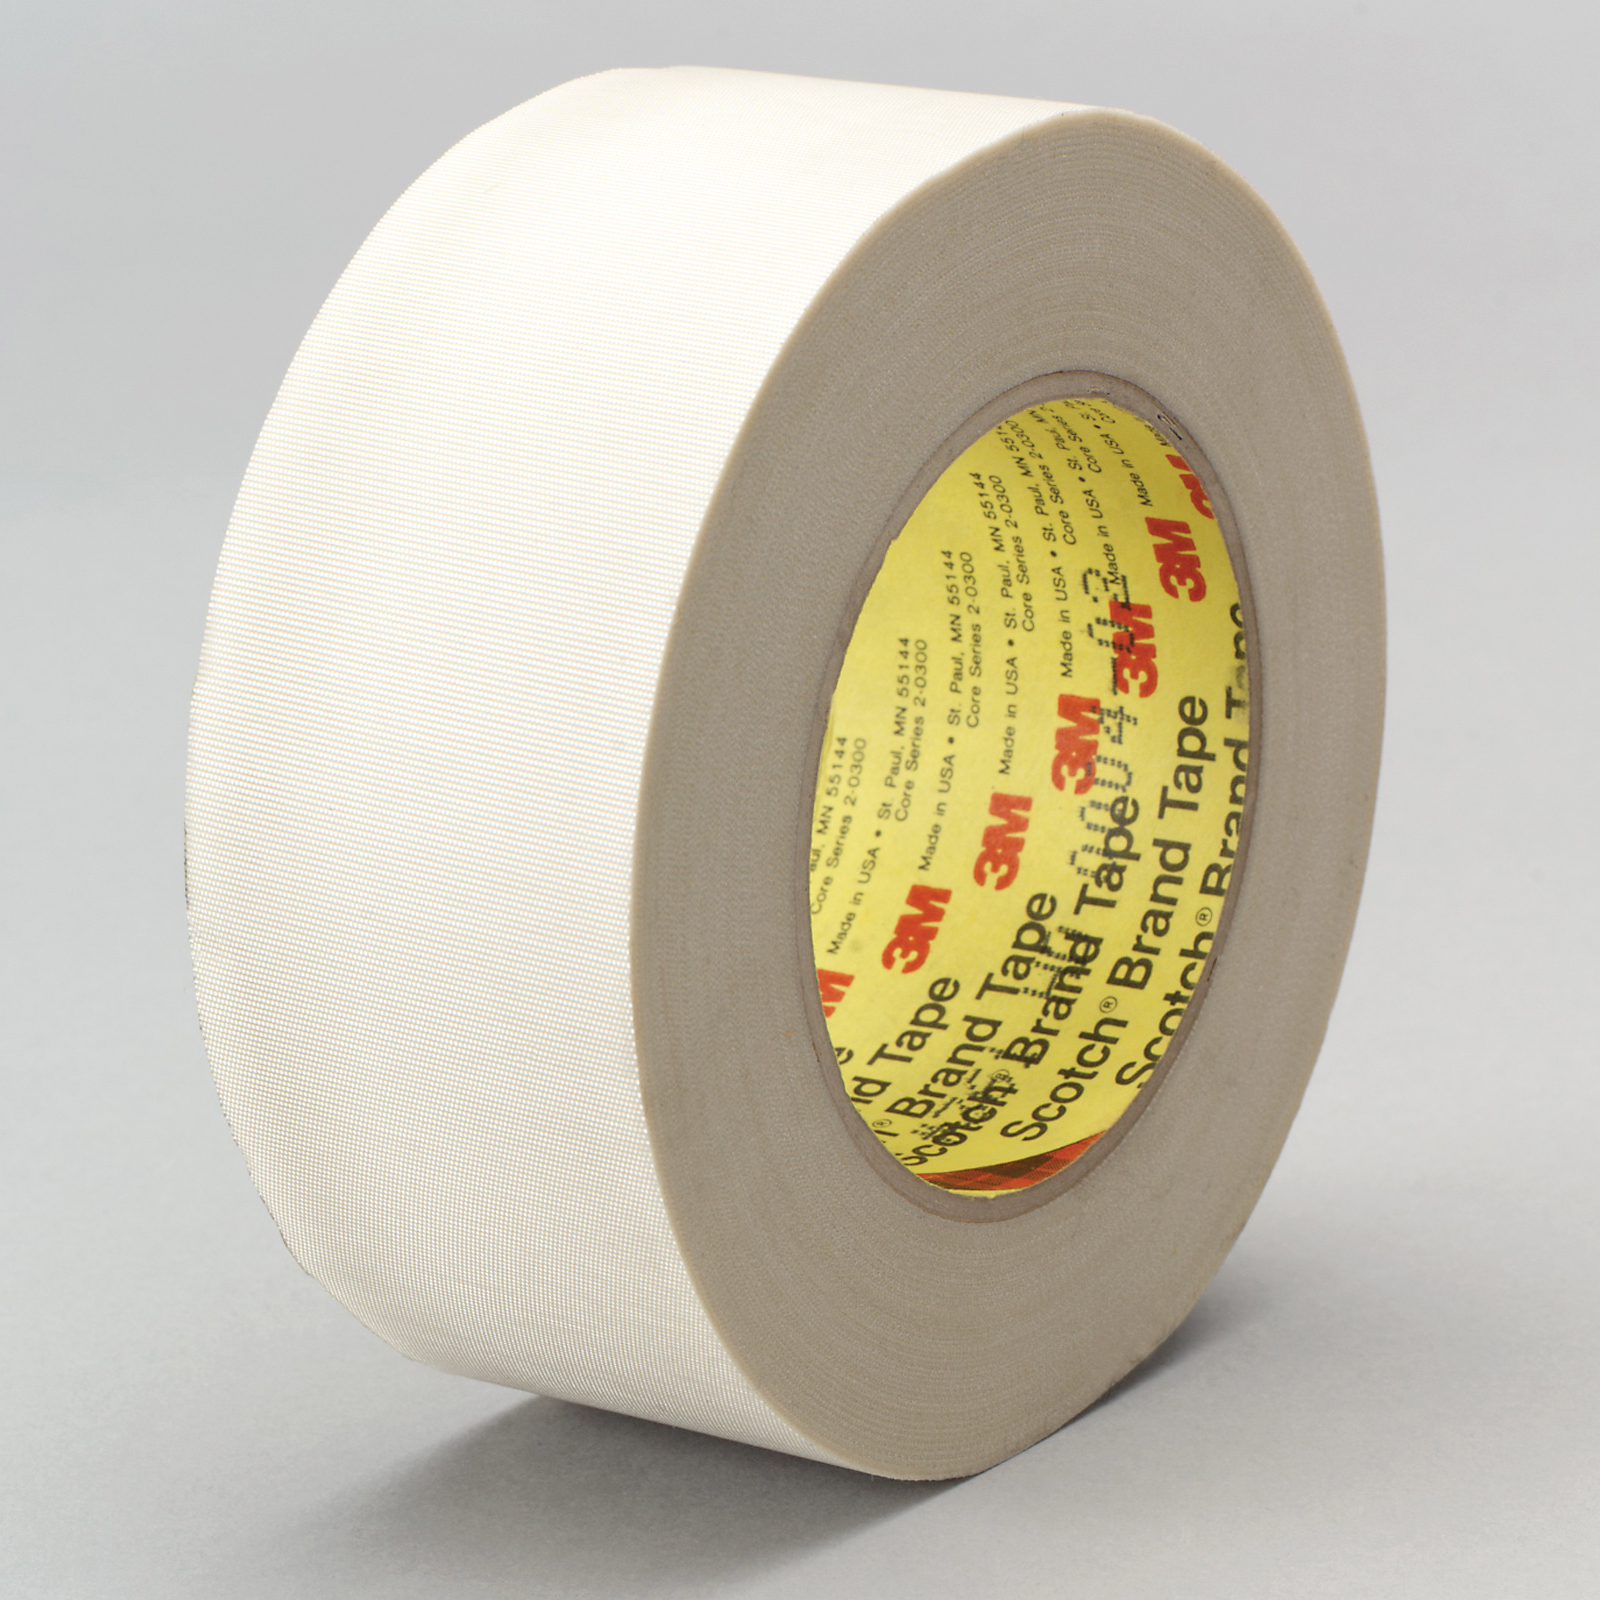 3M™ 021200-07116 Cloth Tape, 60 yd L x 1/2 in W, 6.4 mil THK, Silicone Adhesive, Glass Cloth Backing, White